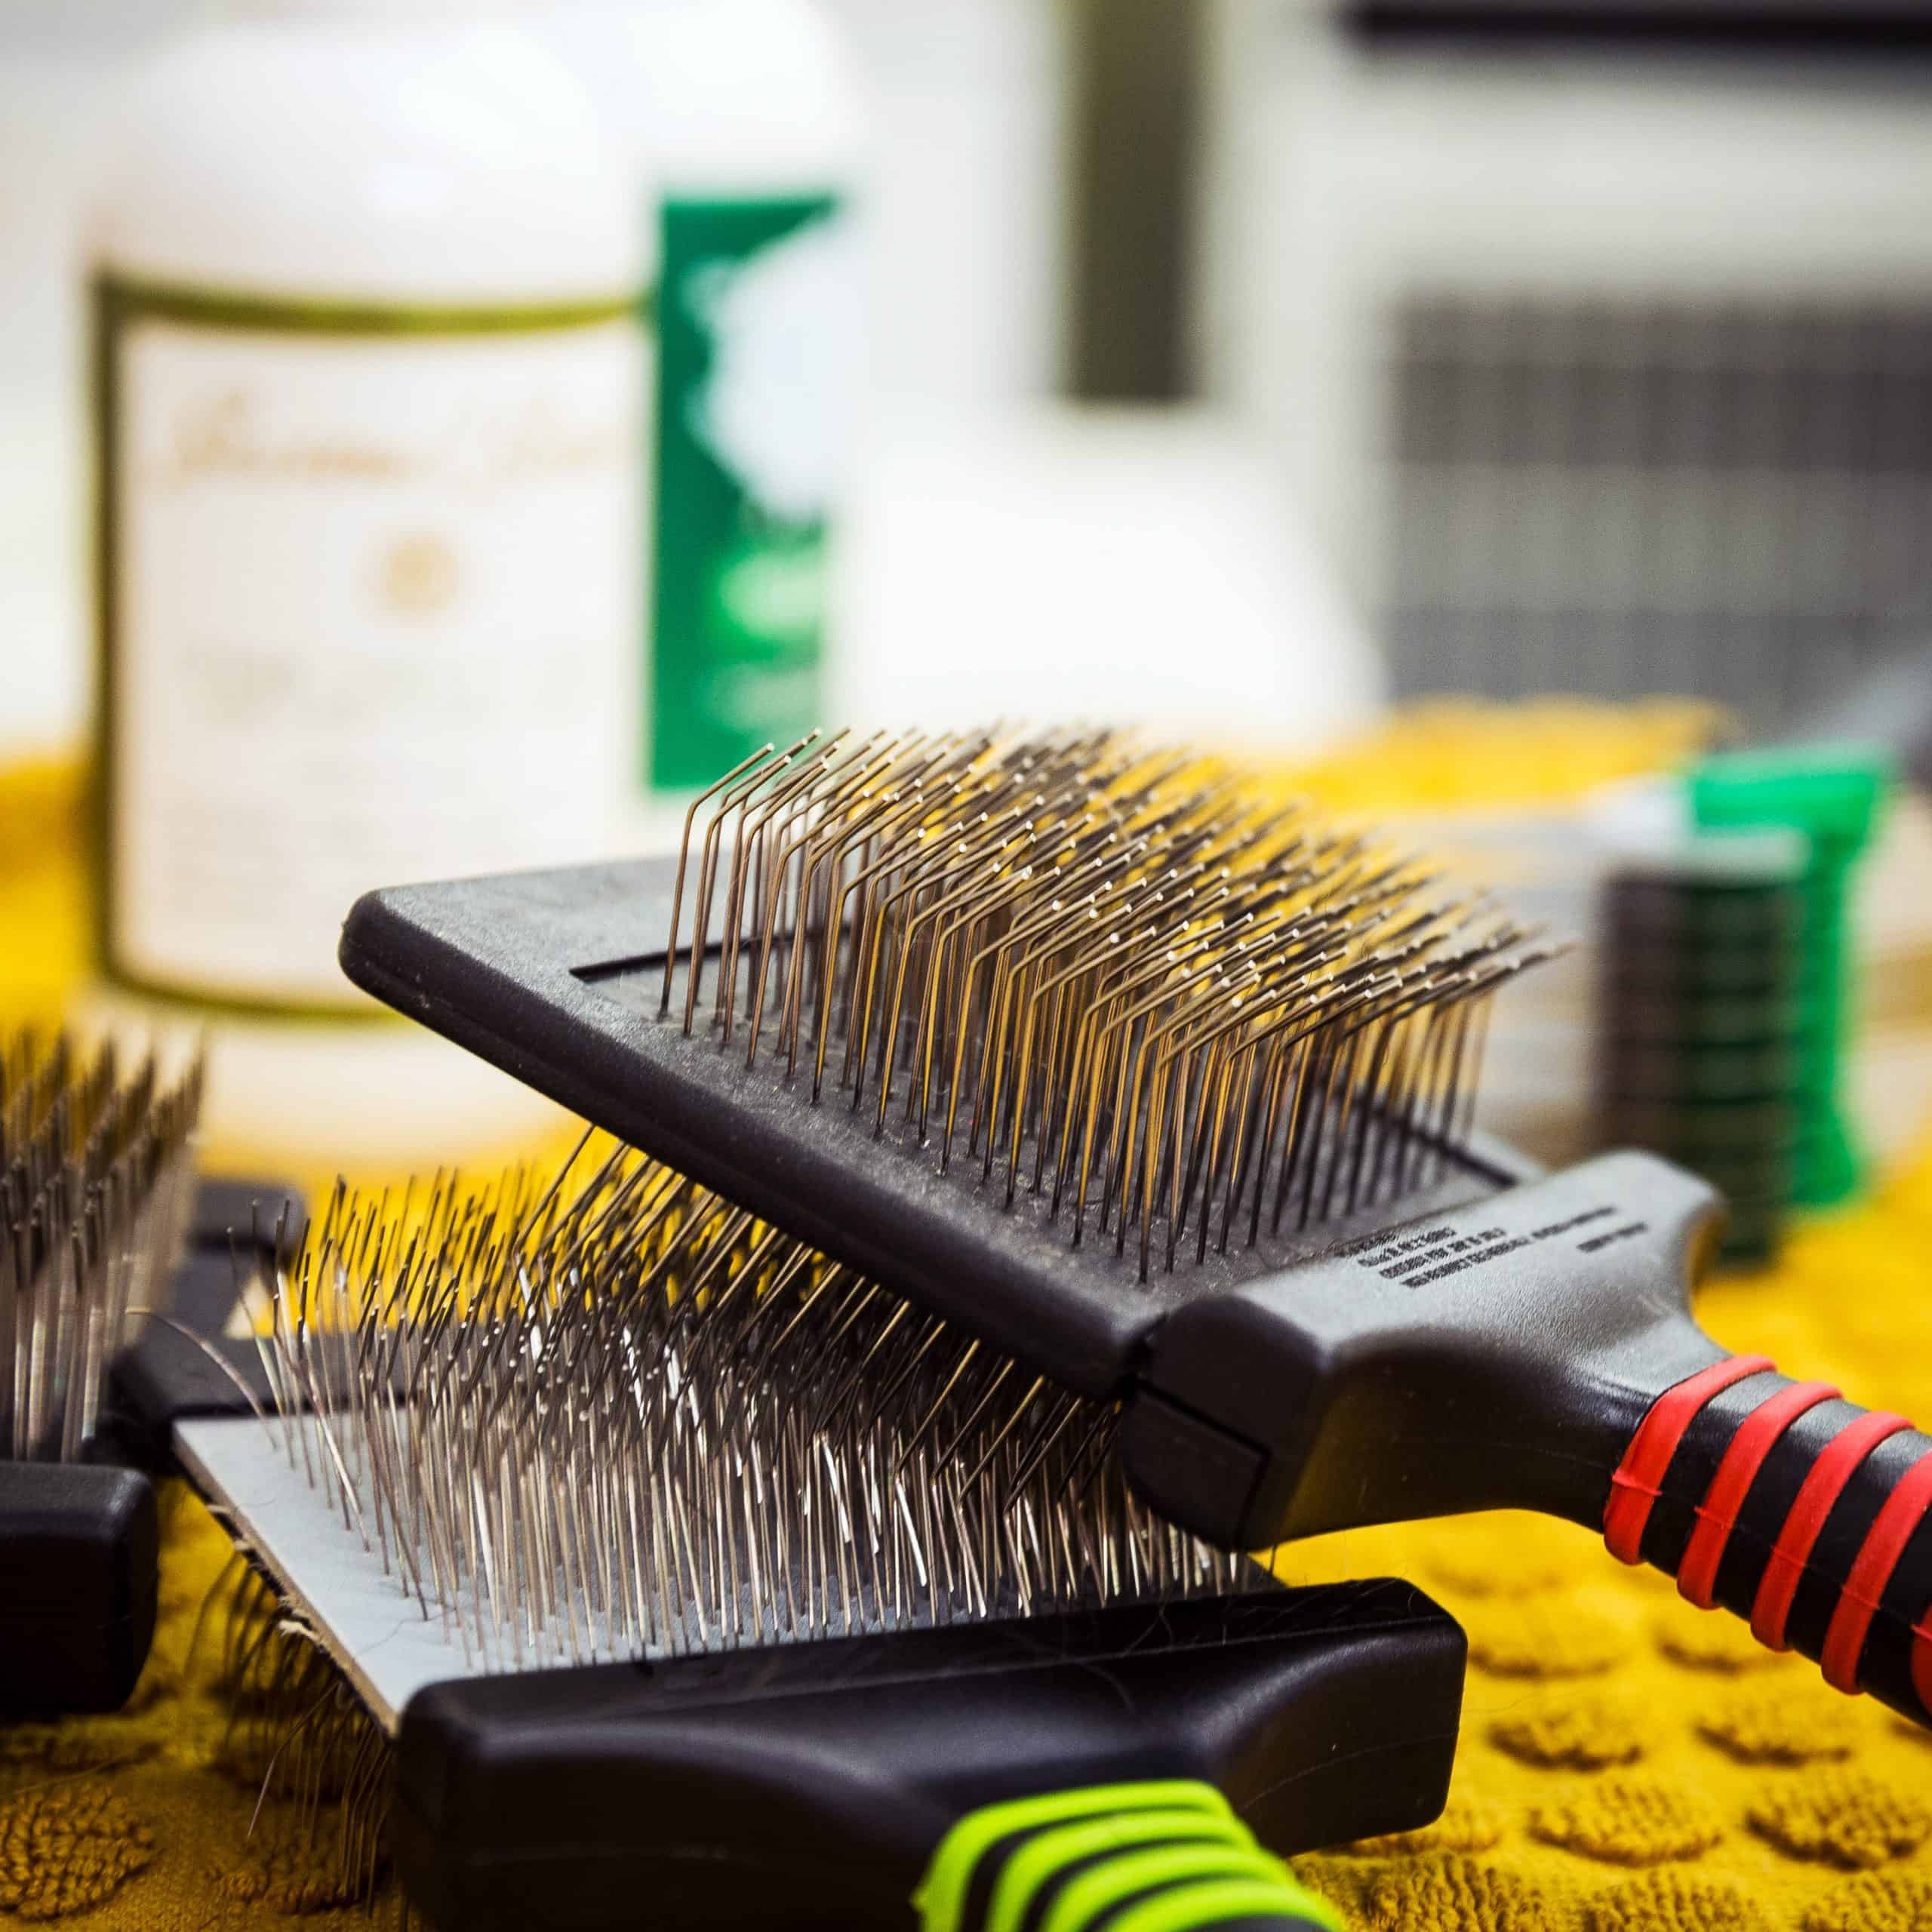 Tools for brushing your dog at home